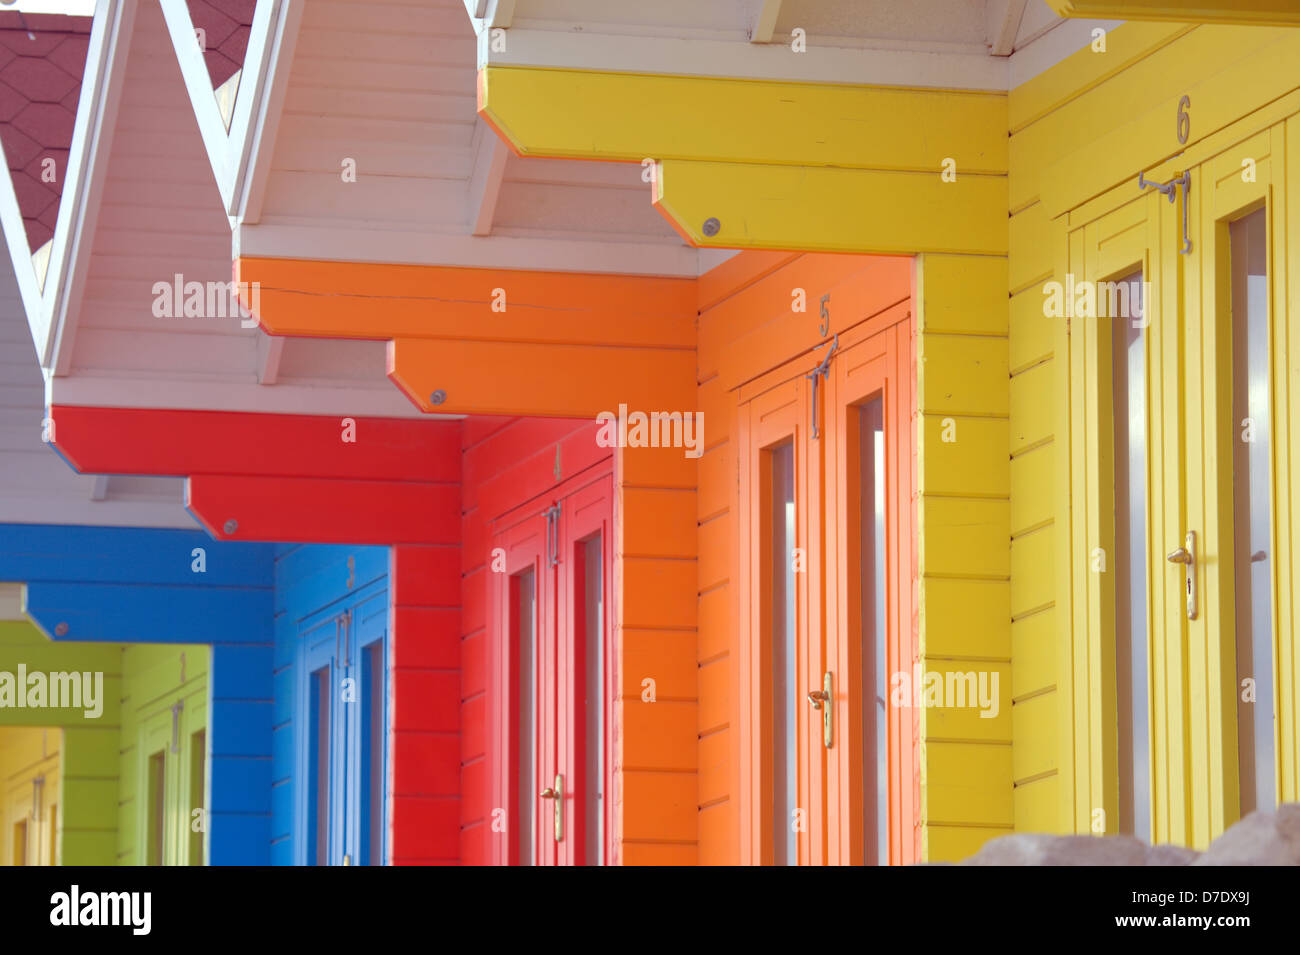 Colourful graphic pattern of beach huts. - Stock Image